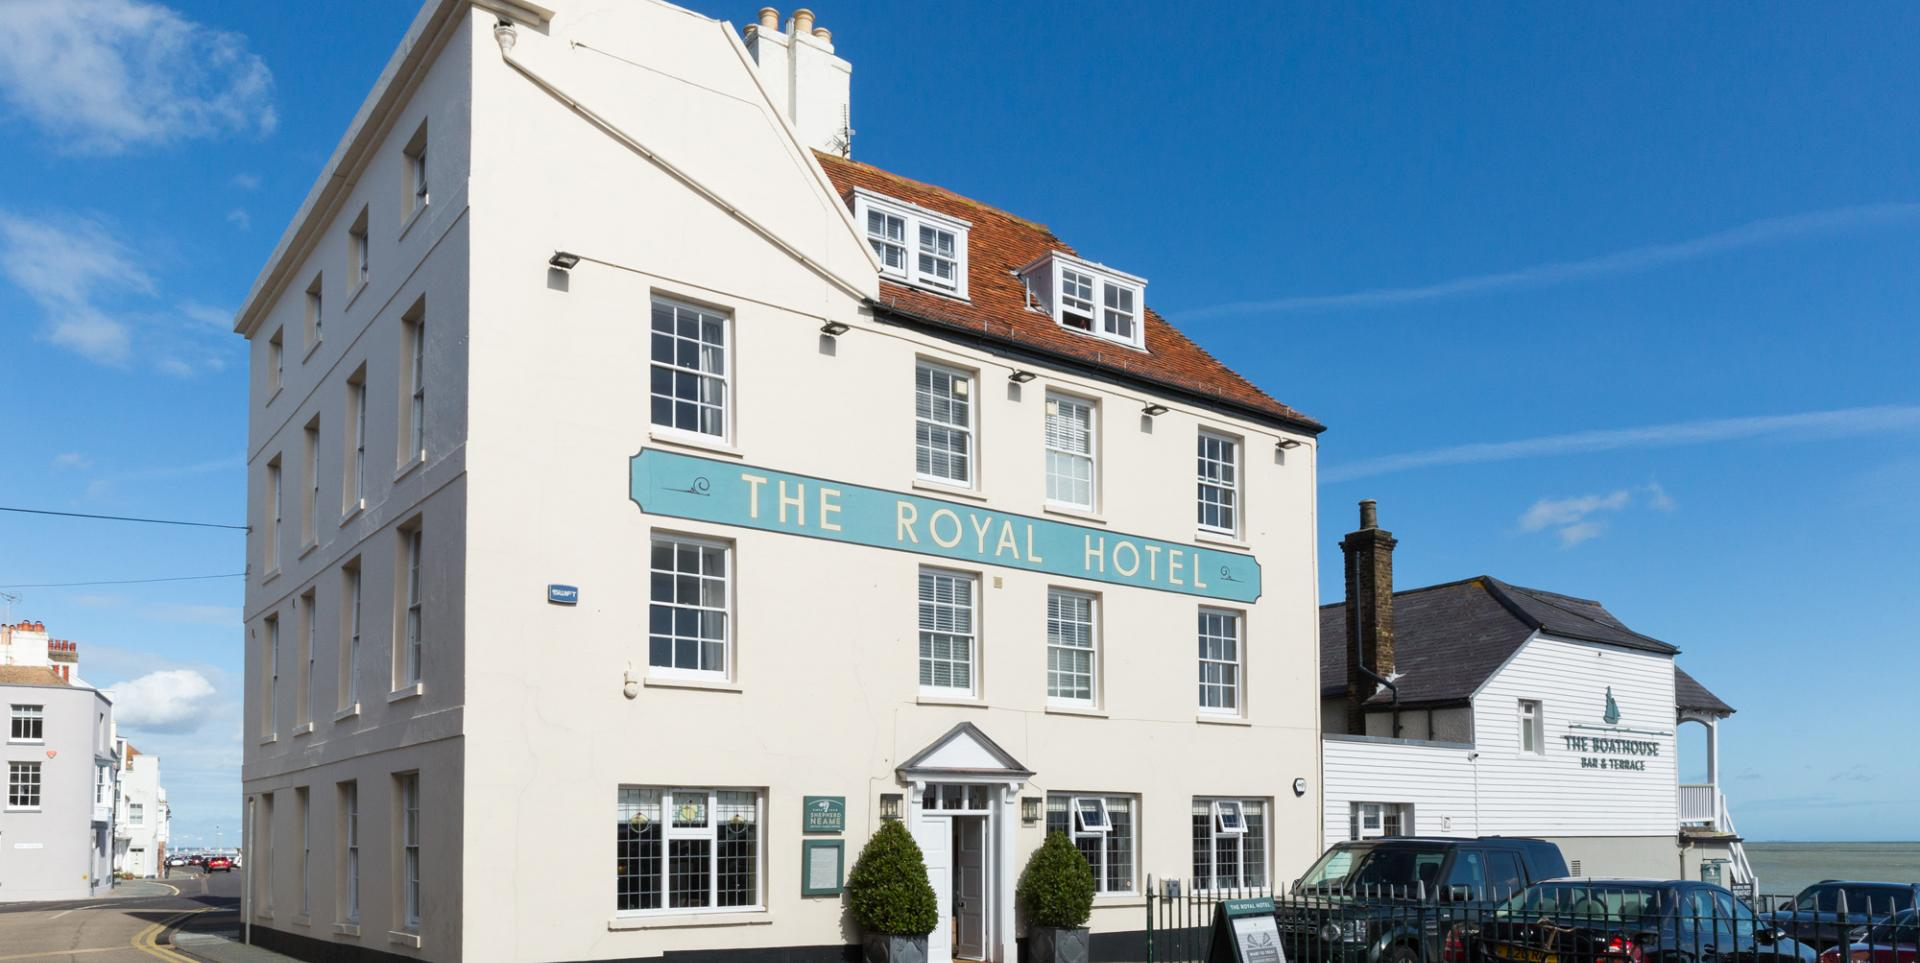 Royal Hotel, Deal